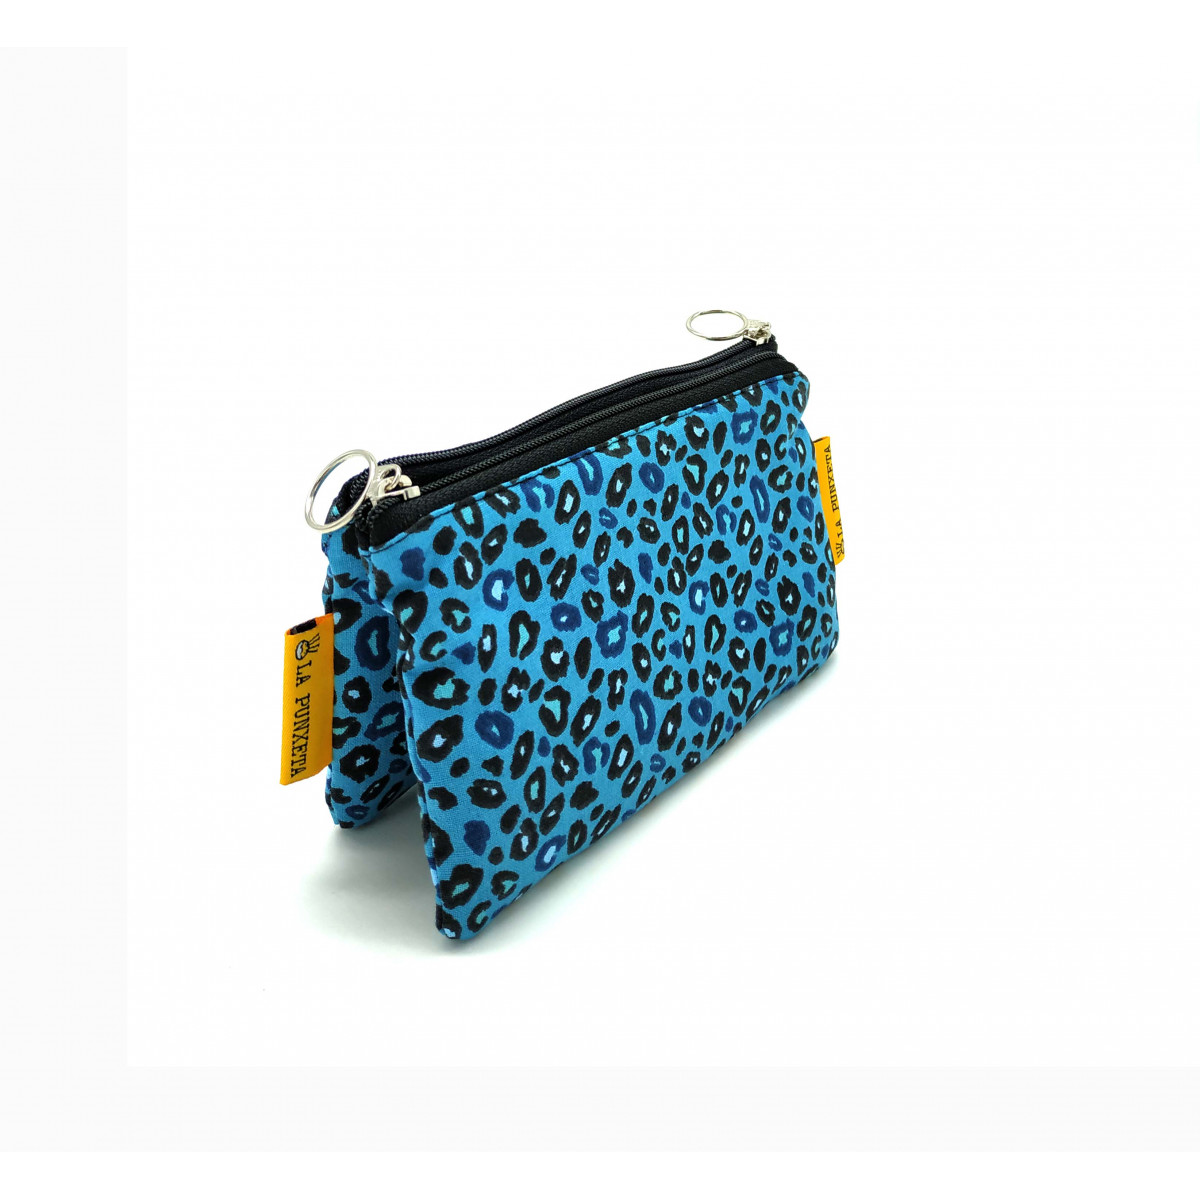 Monedero Leopardo Azul